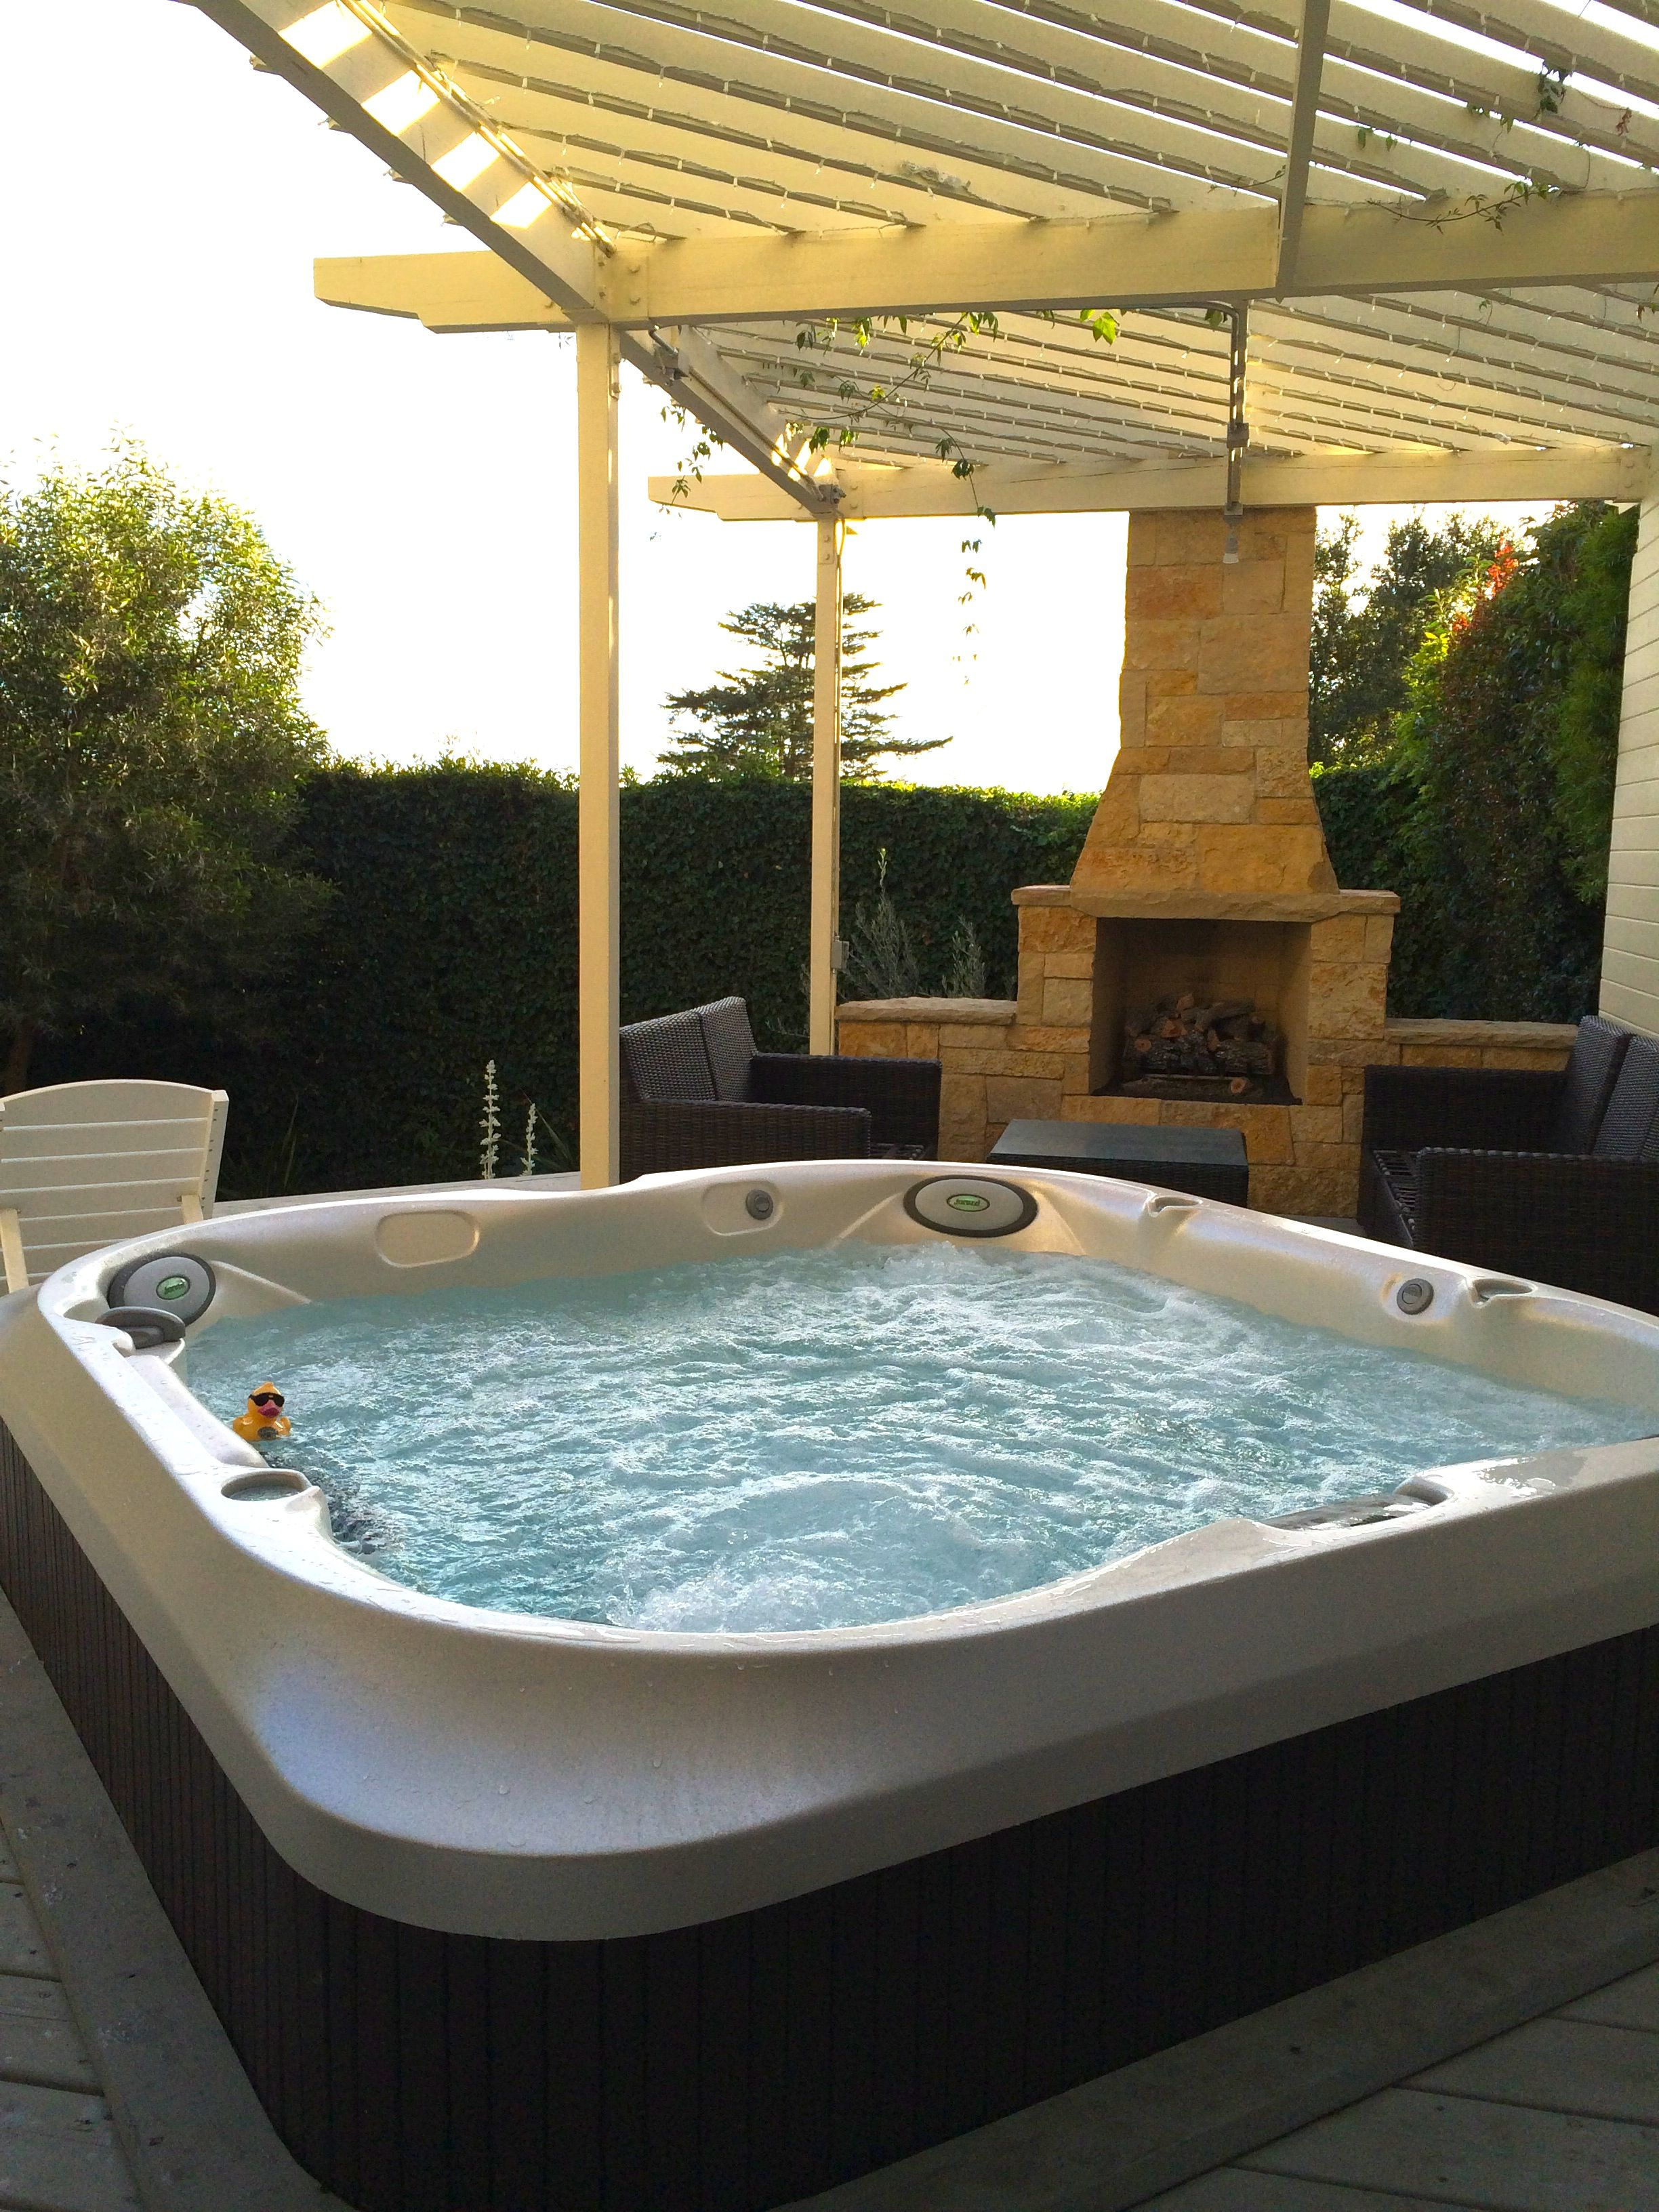 New Jacuzzi J400 Series Spa With Fireplace In The Background